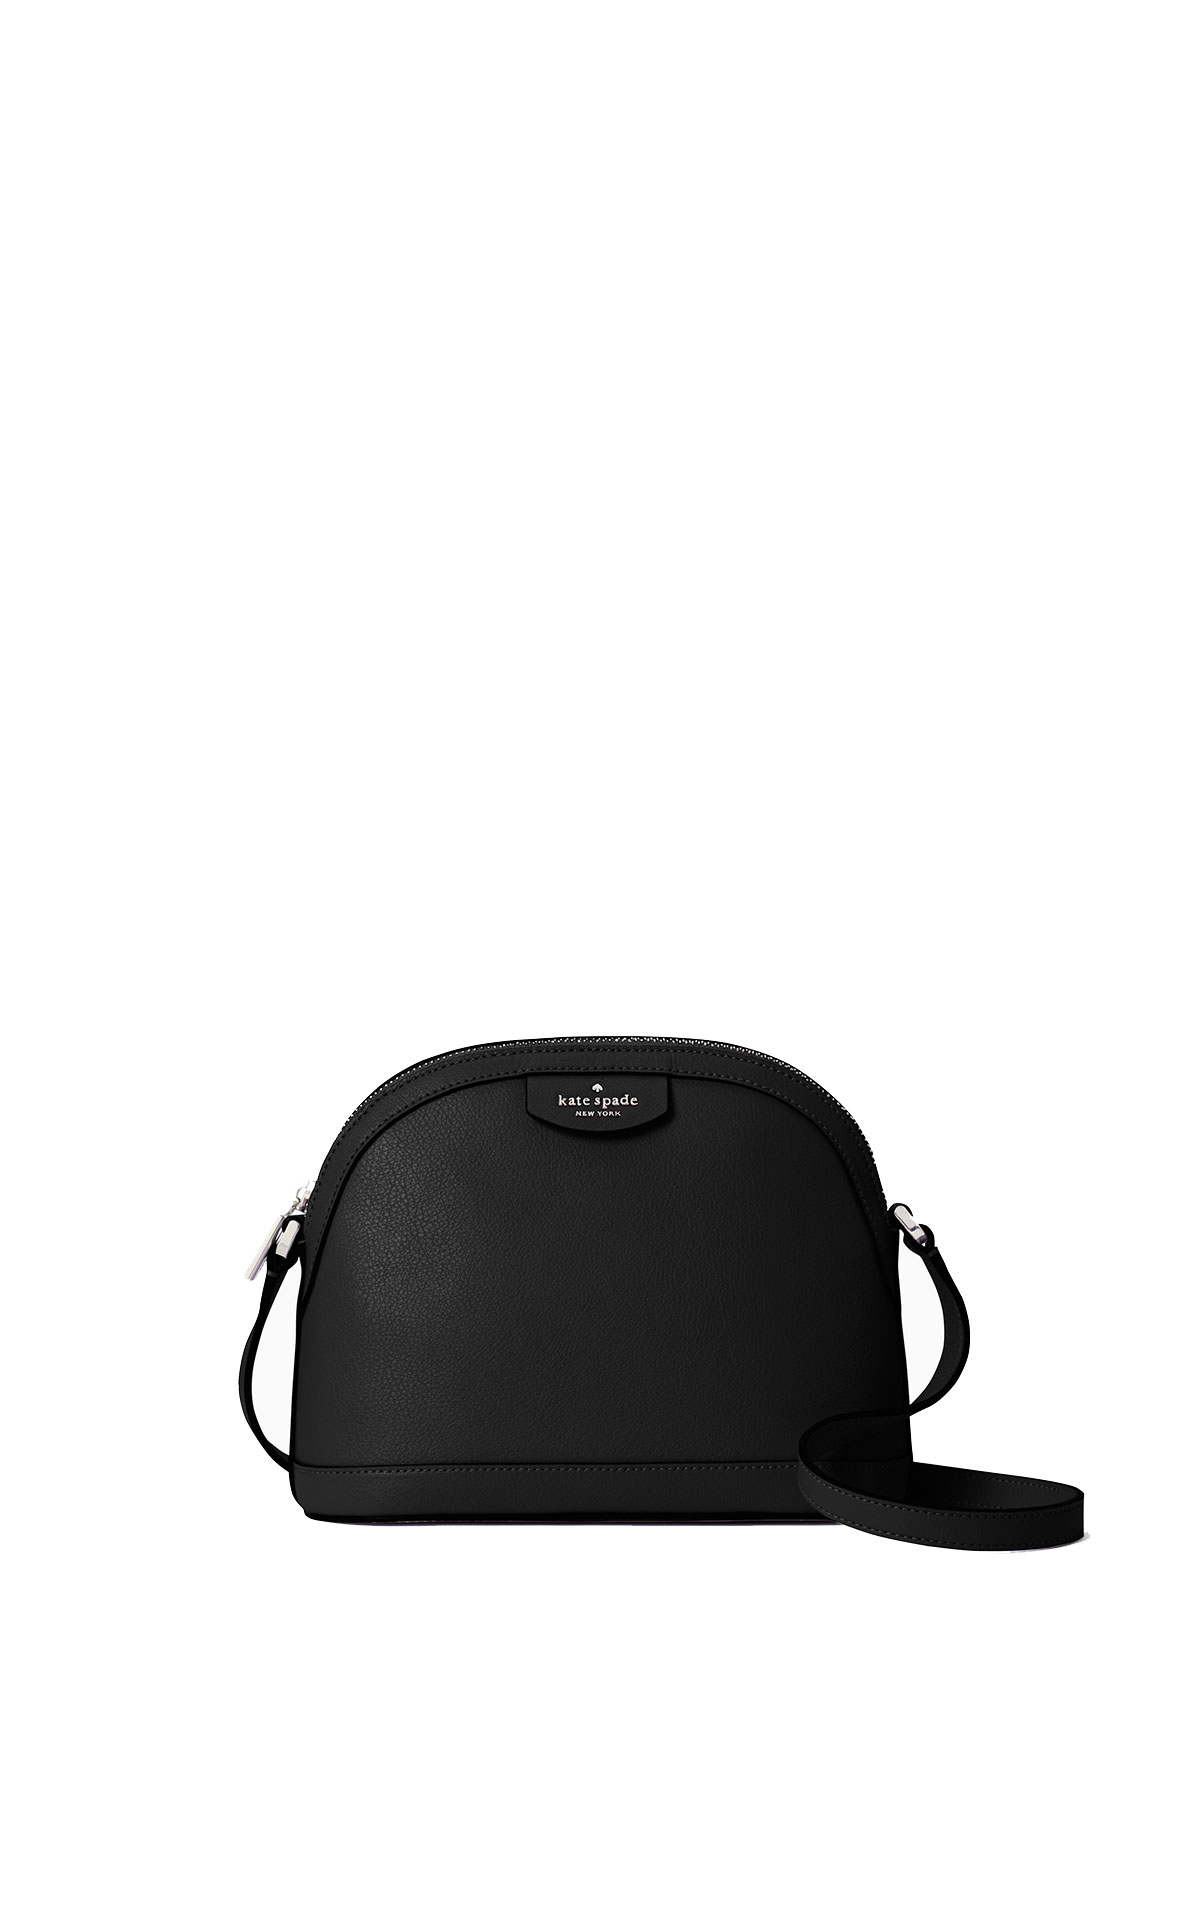 kate spade new york Sylvia x-large dome crossbody from Bicester Village